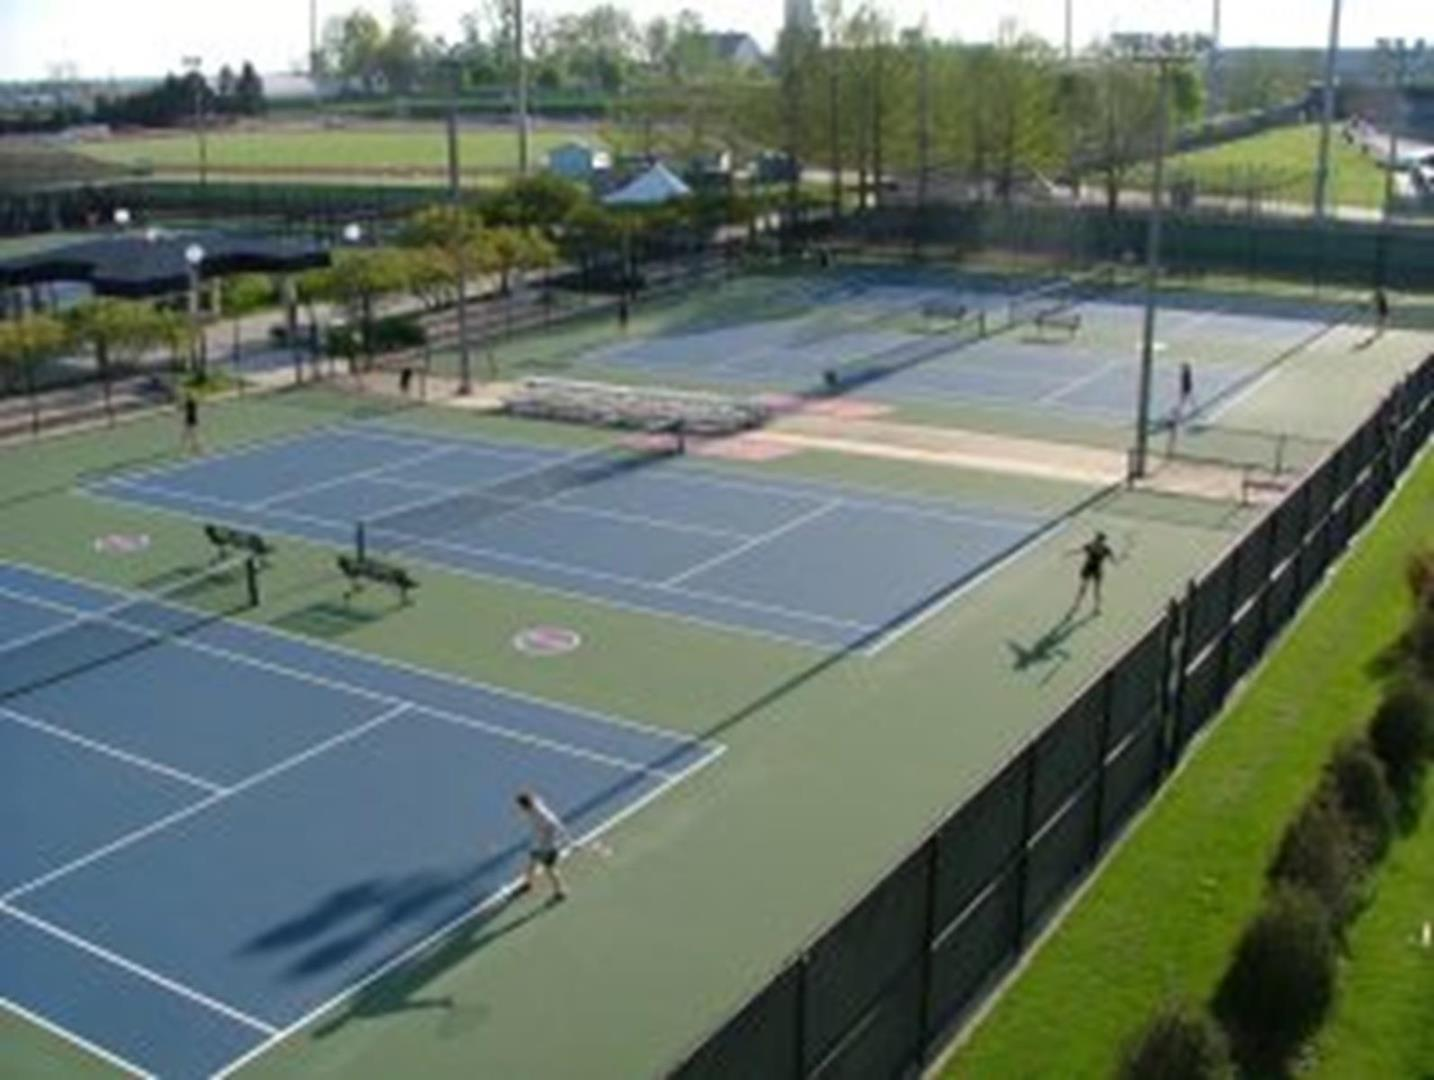 Atkins Tennis Center